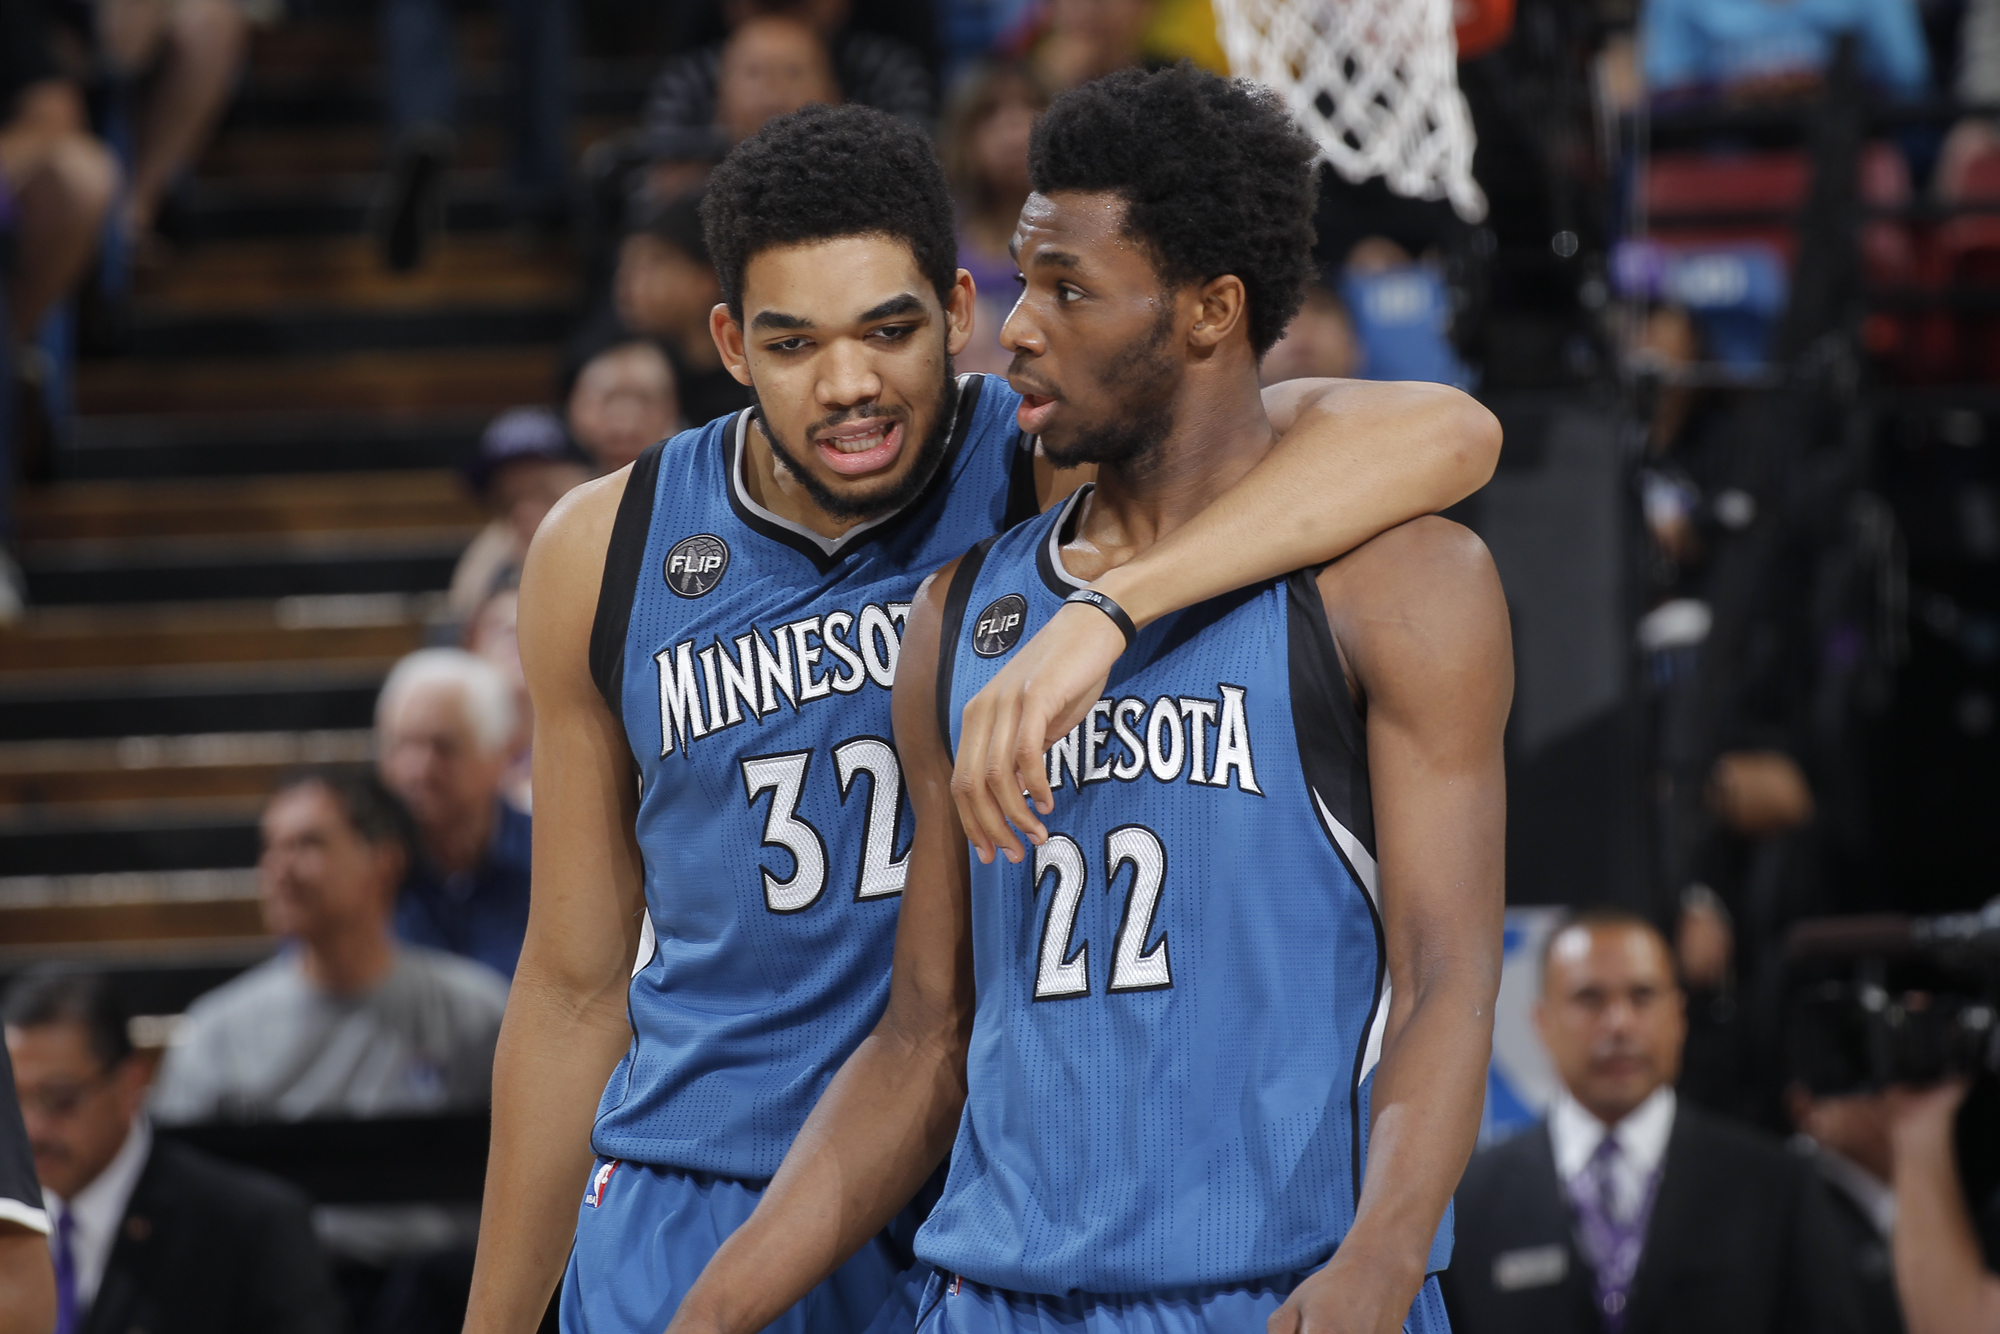 Karl-Anthony Towns #32 of the Minnesota Timberwolves and Andrew Wiggins #22 of the Minnesota Timberwolves walk off the court against the Sacramento Kings at Sleep Train Arena on April 7, 2015 in Sacramento, California.